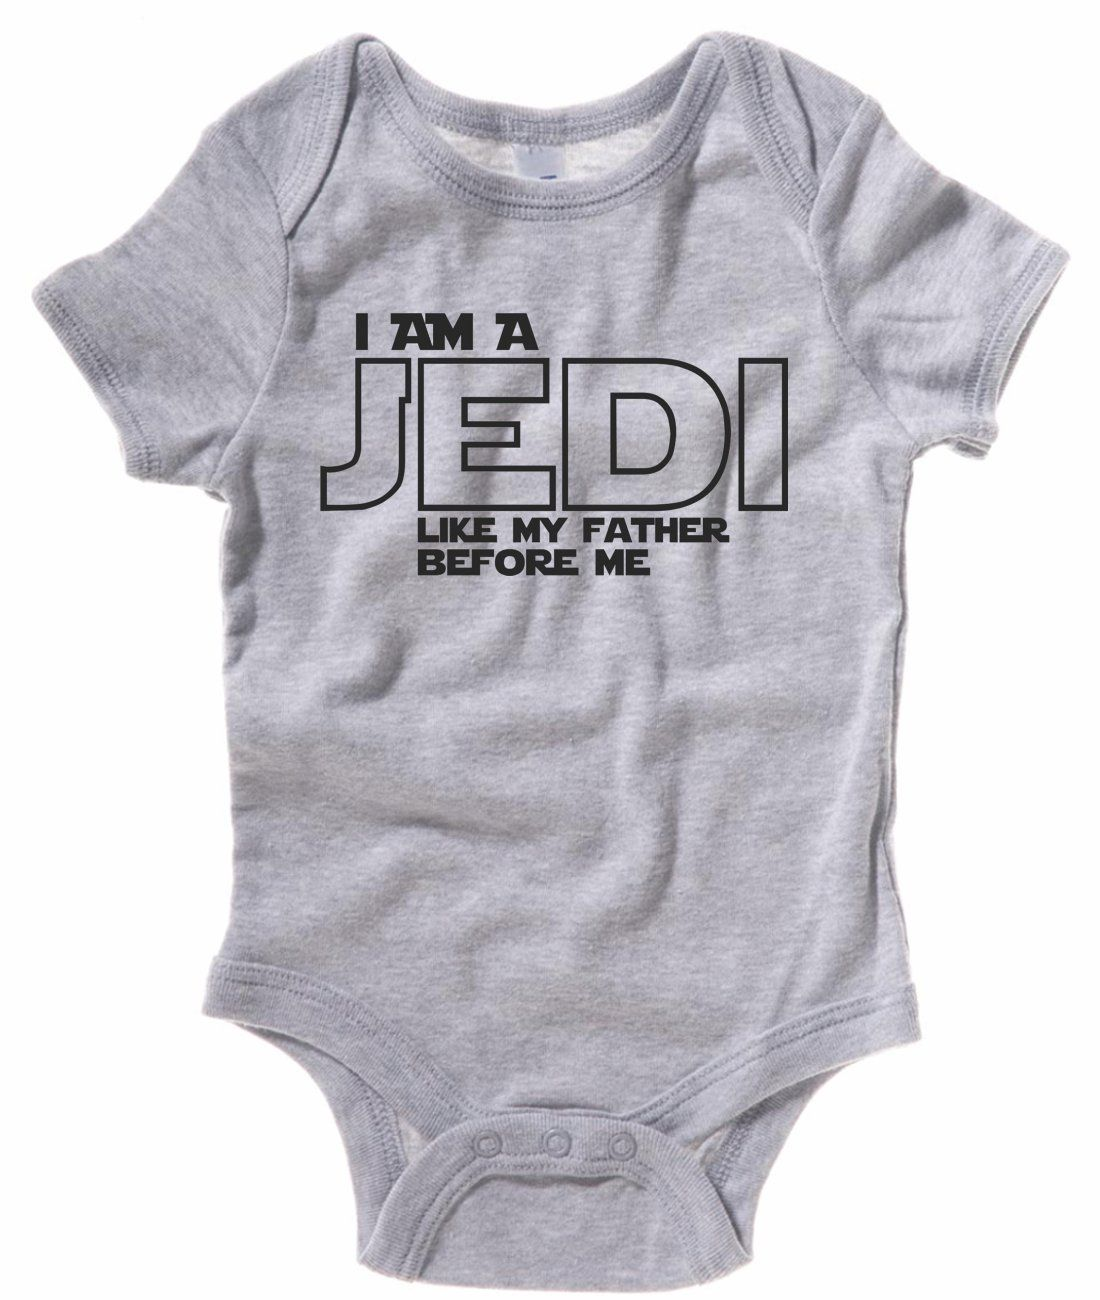 Baby Clothes Near Me Simple Amazon I'm A Jedi Like My Father Before Me Baby One Piece Star Decorating Inspiration